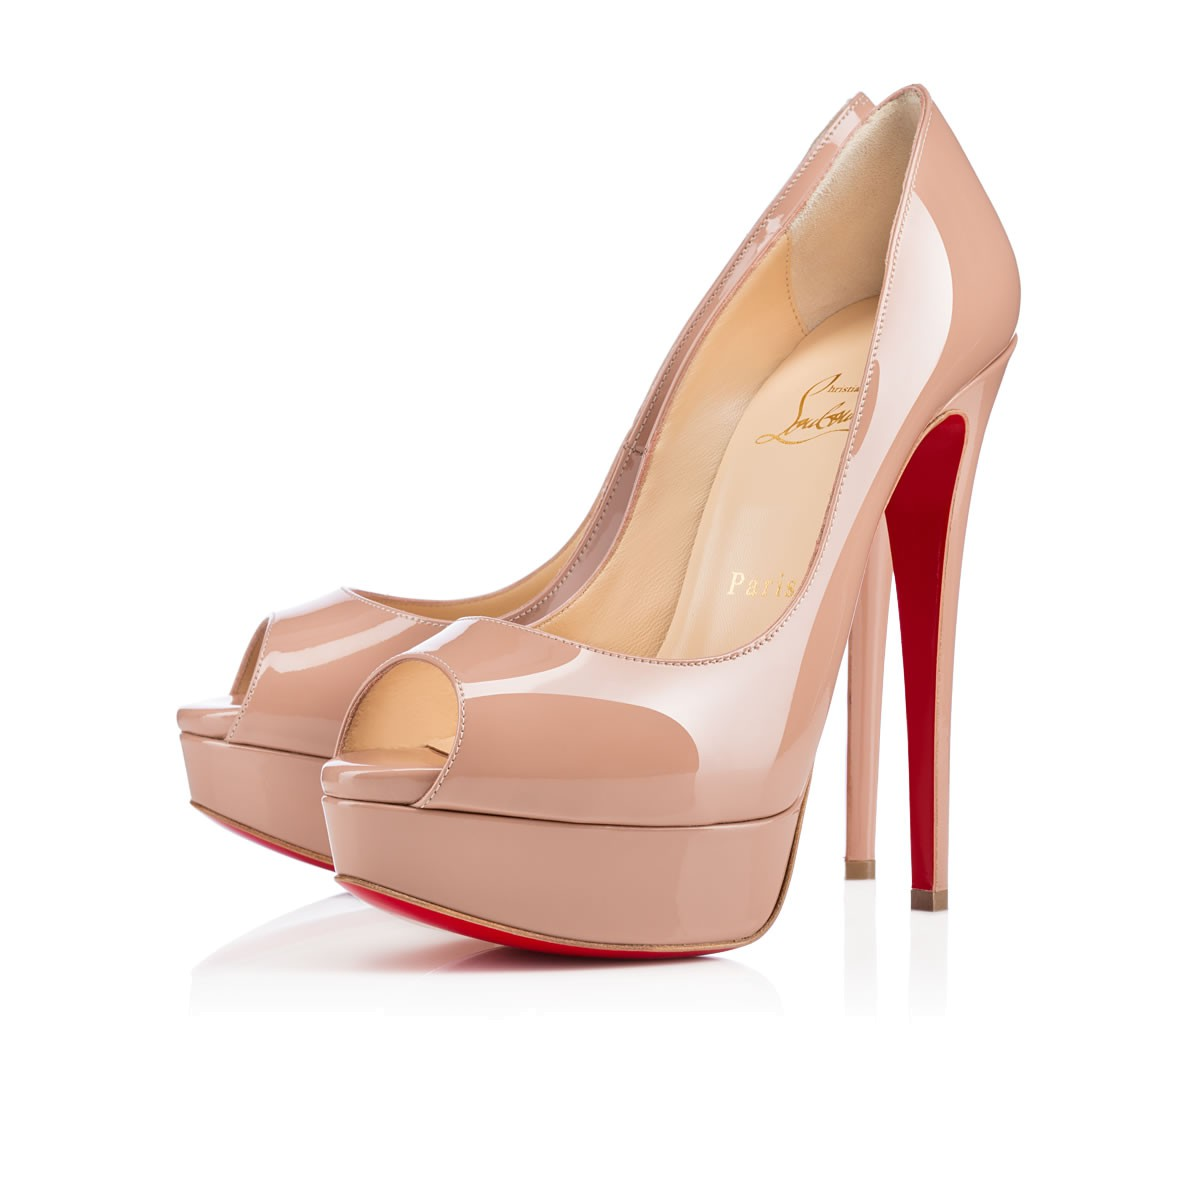 chaussure louboutin femme beige